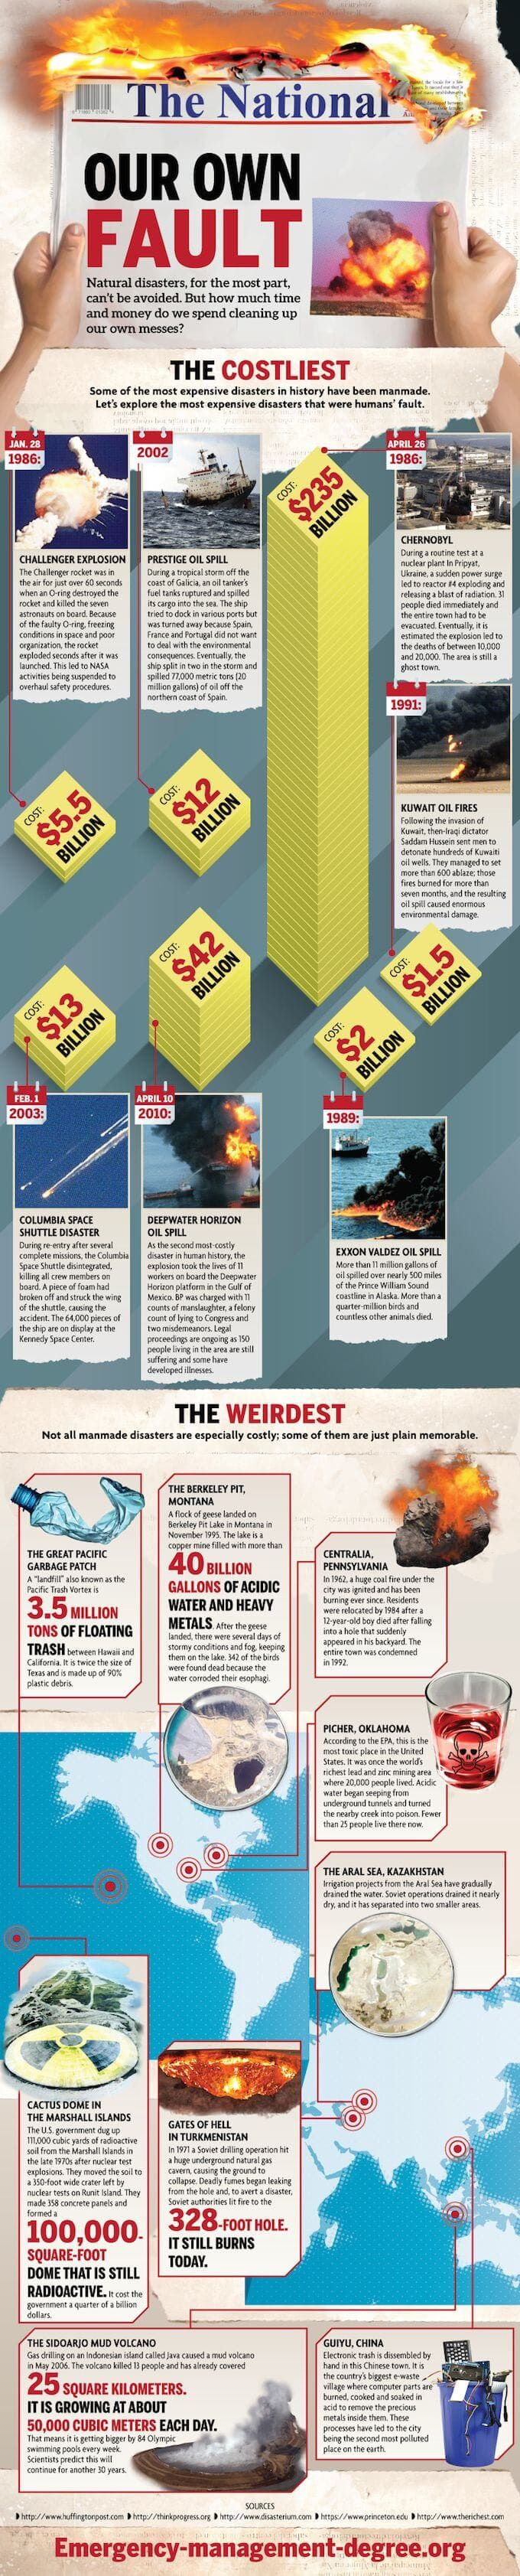 manmade disasters infographic